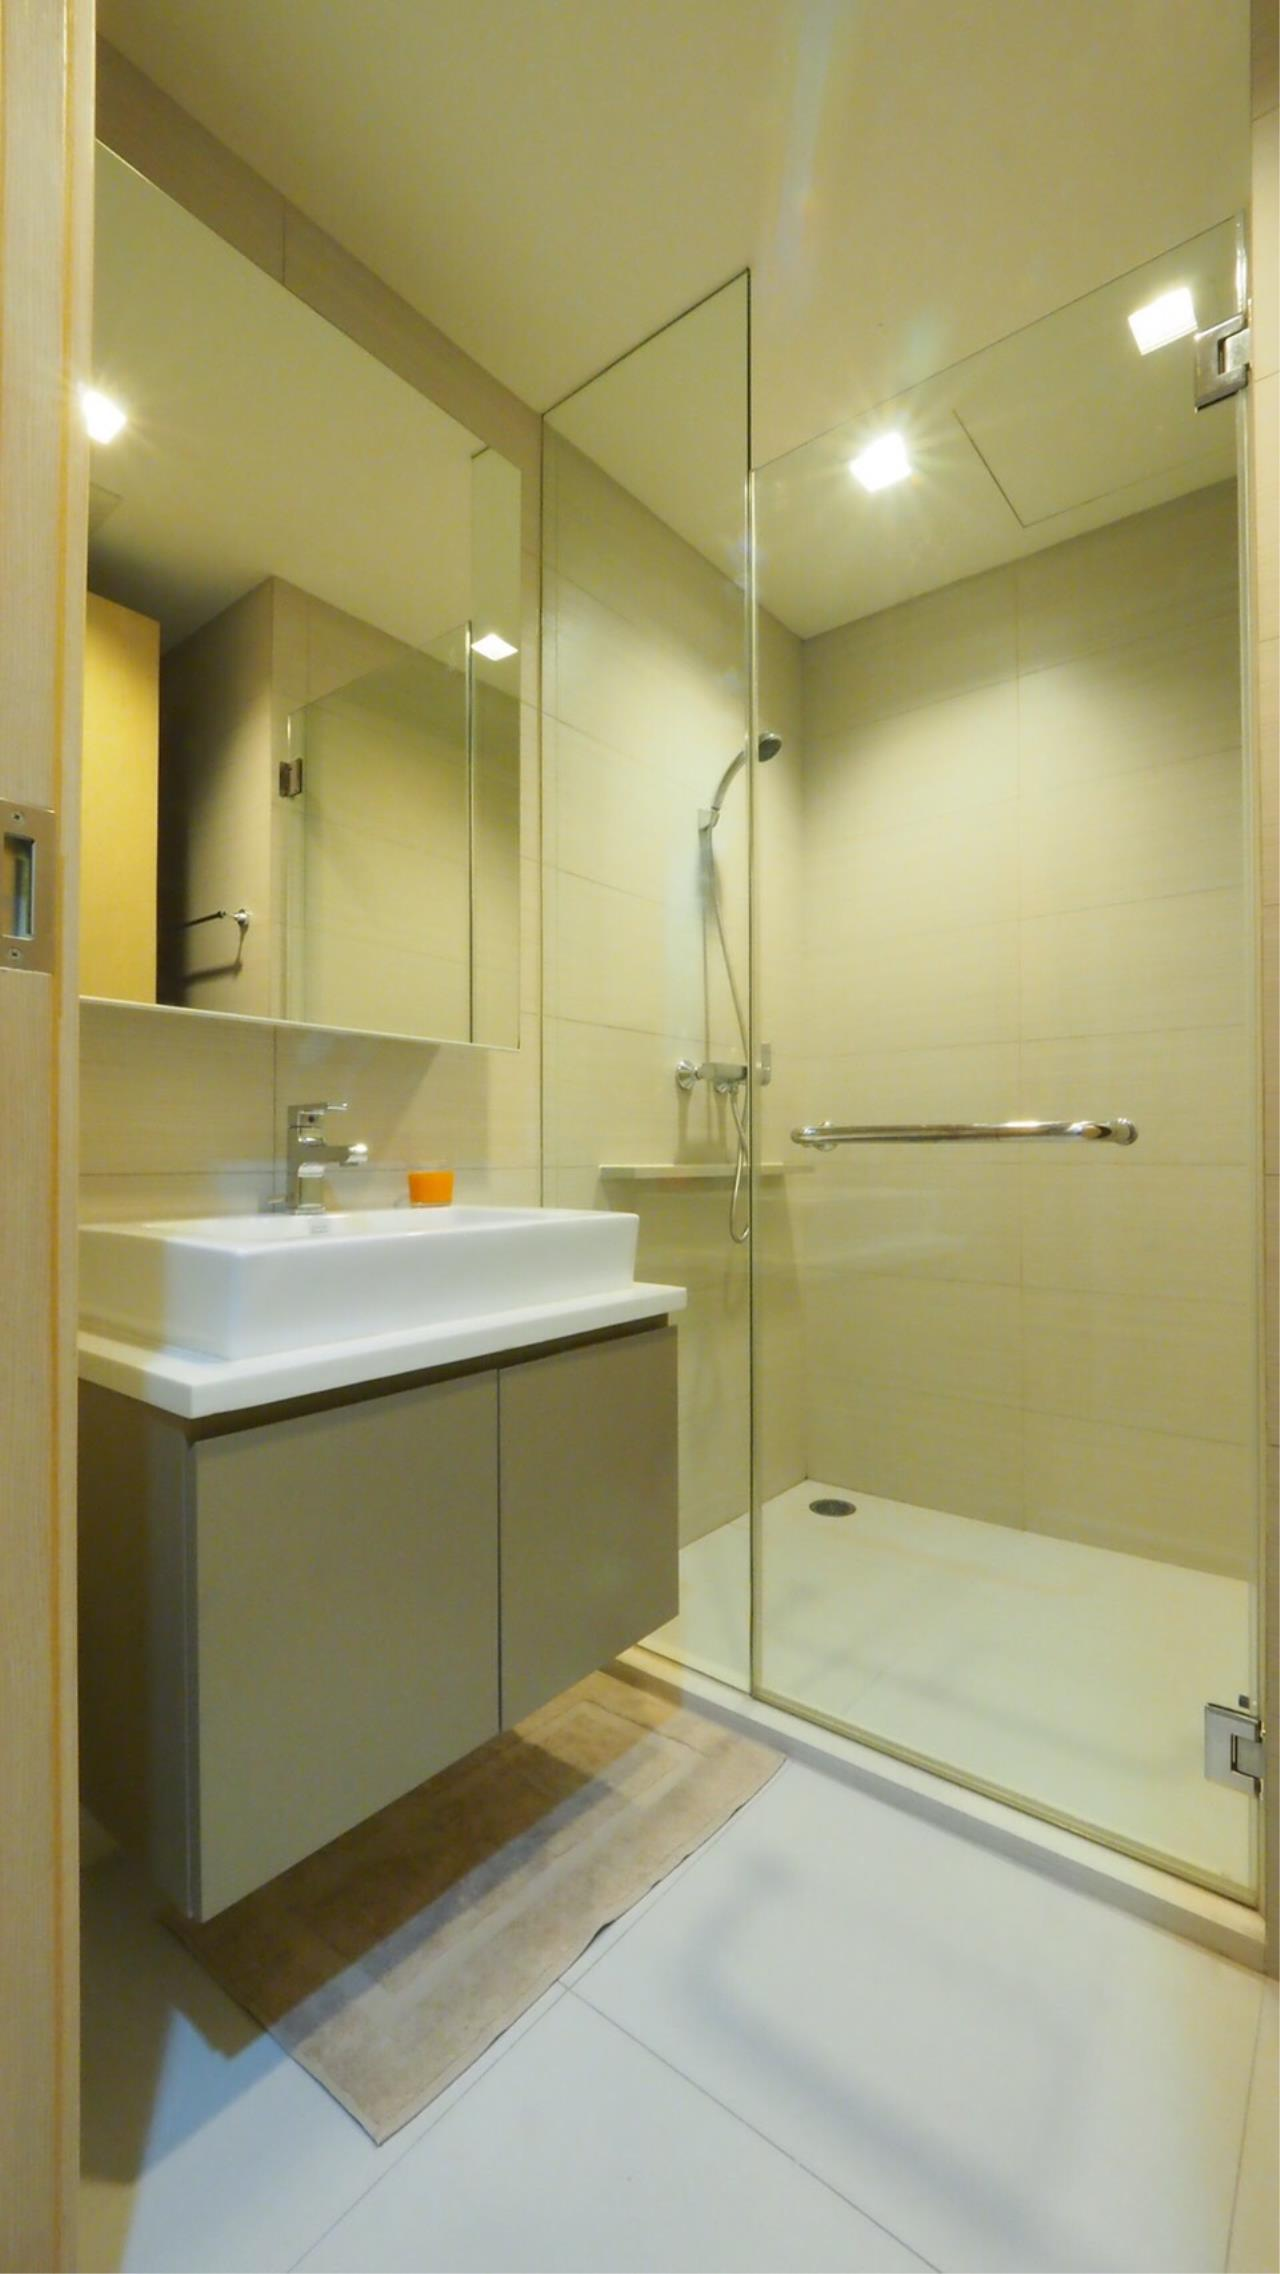 Siam Prop Agency's Siri at Sukhumvit 38 Condo for rent - Two Bedrooms 55,000 Bht per month     8